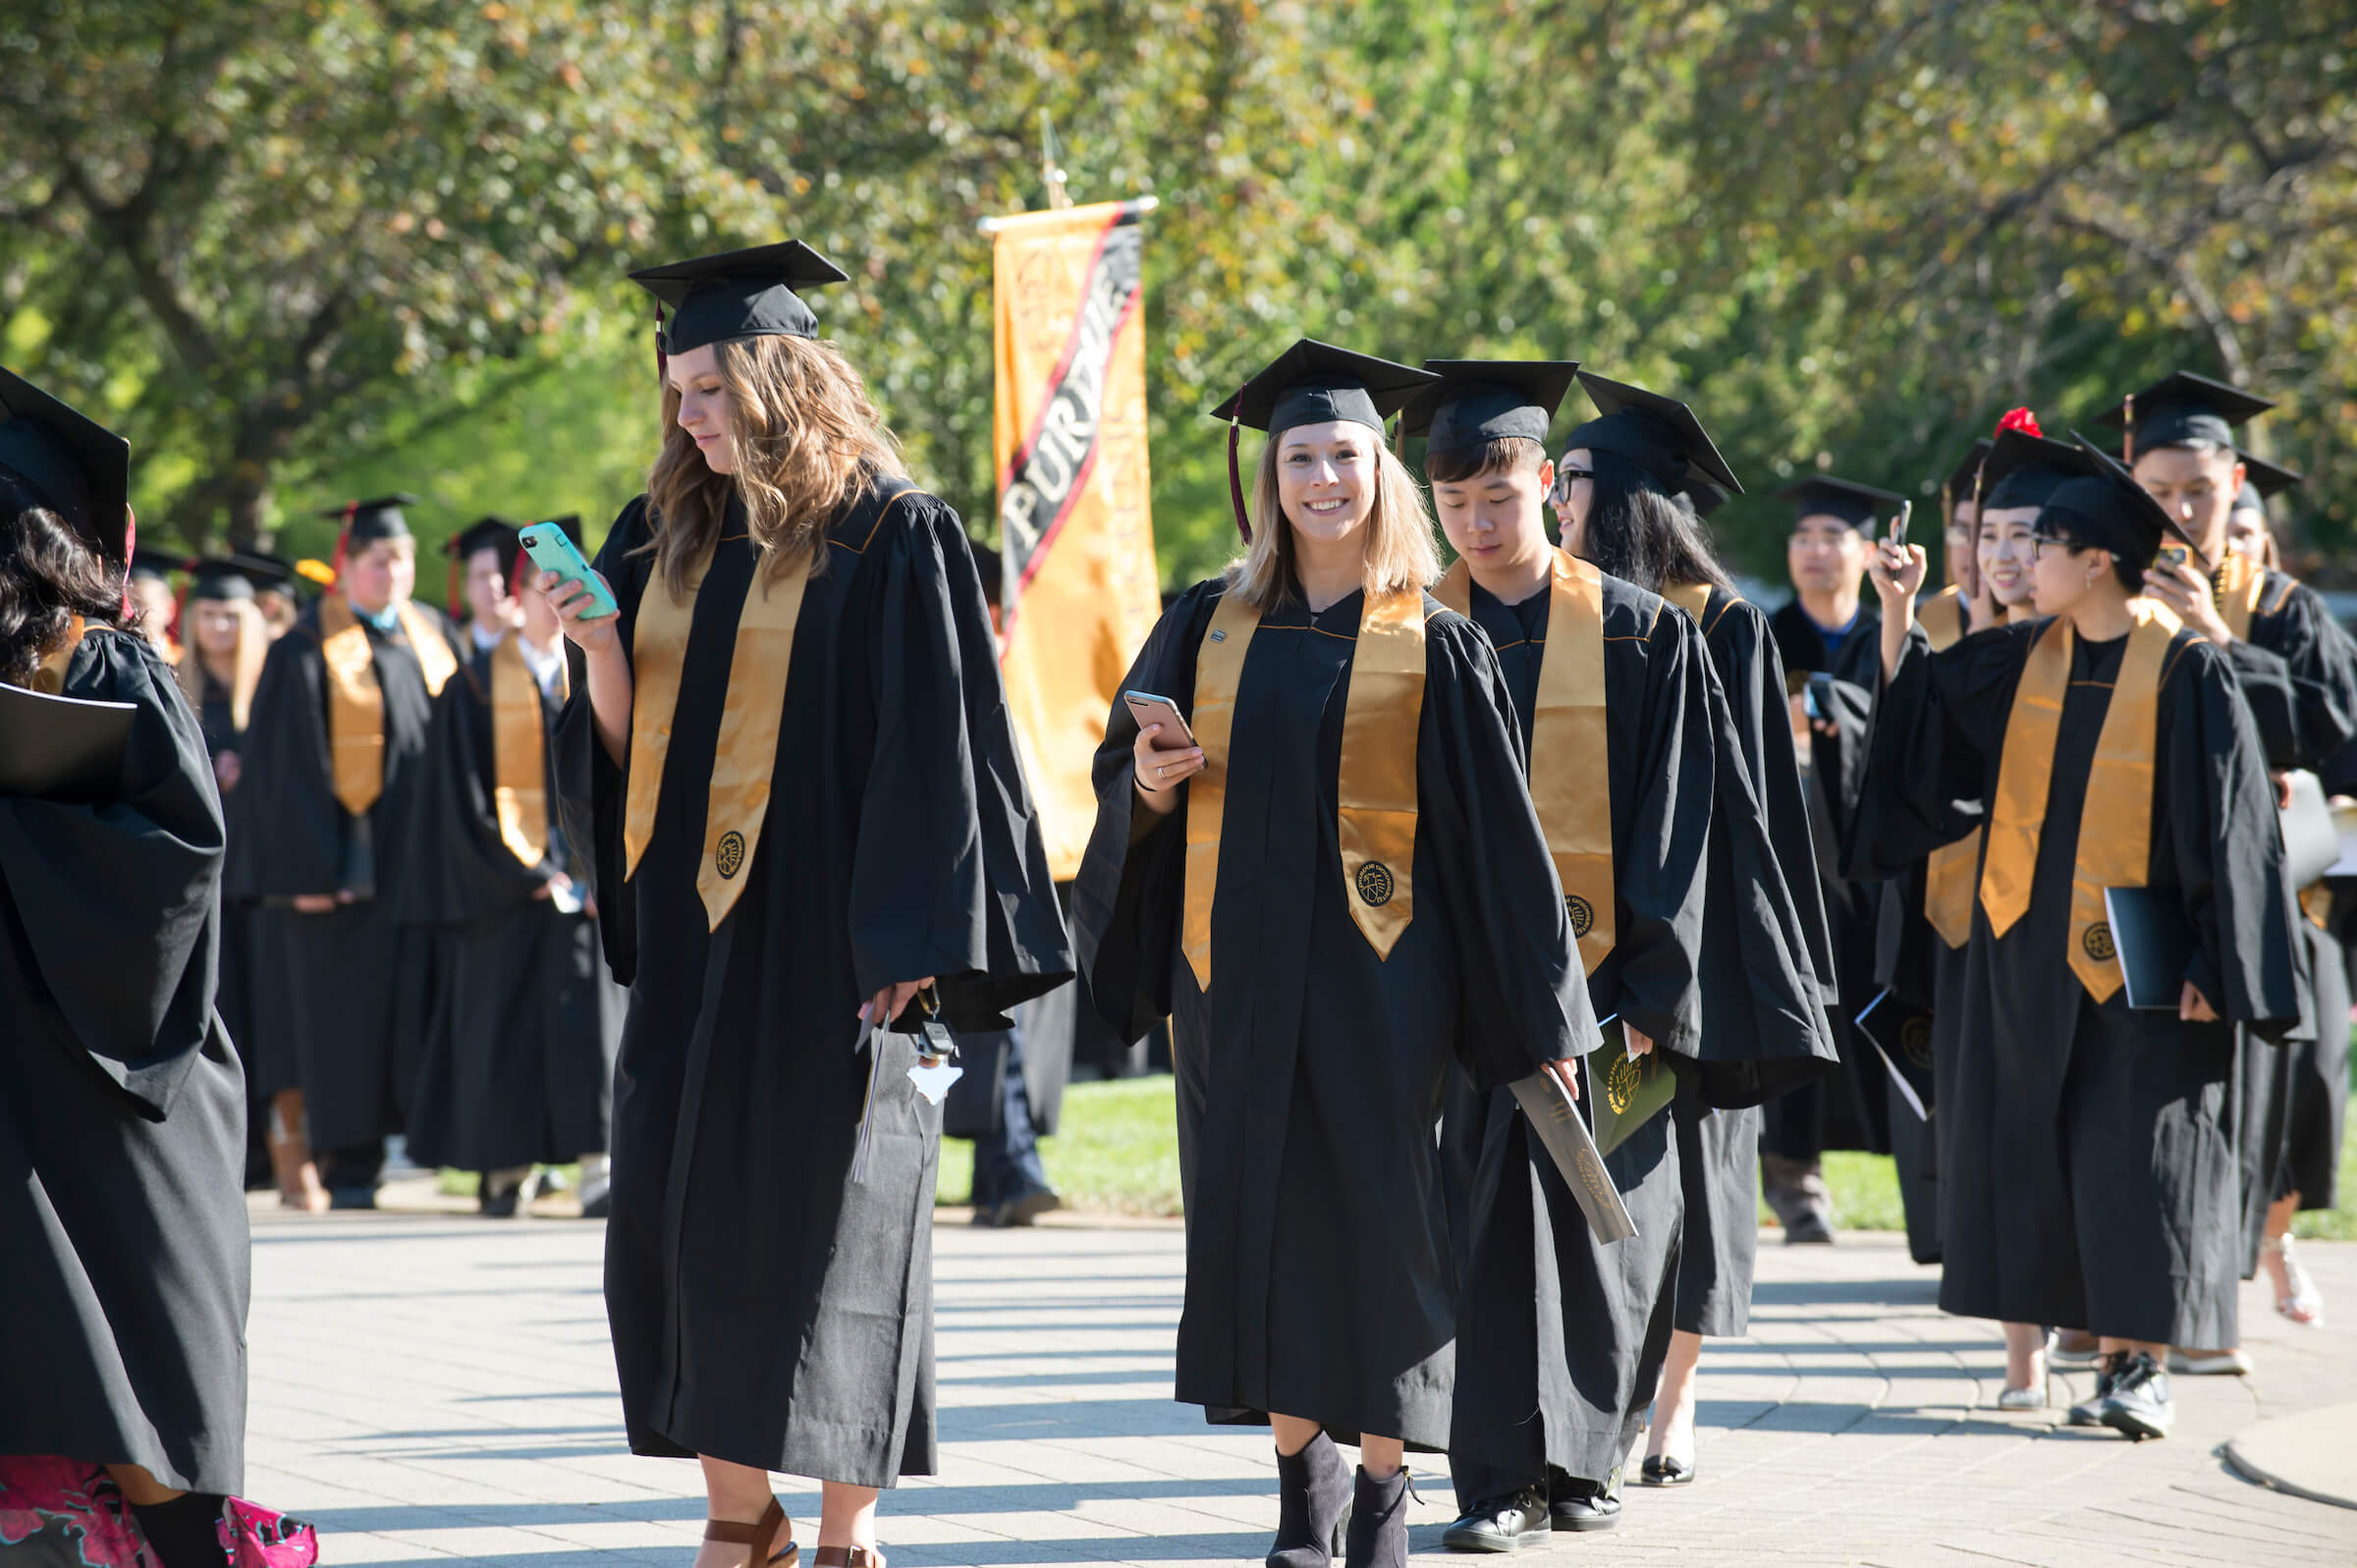 purdue university graduate school thesis Before beginning the thesis or dissertation process, students must meet with  an advisor or graduate program director to  final day to submit final  documents to the graduate school:  apa and mla style guides (purdue  university).